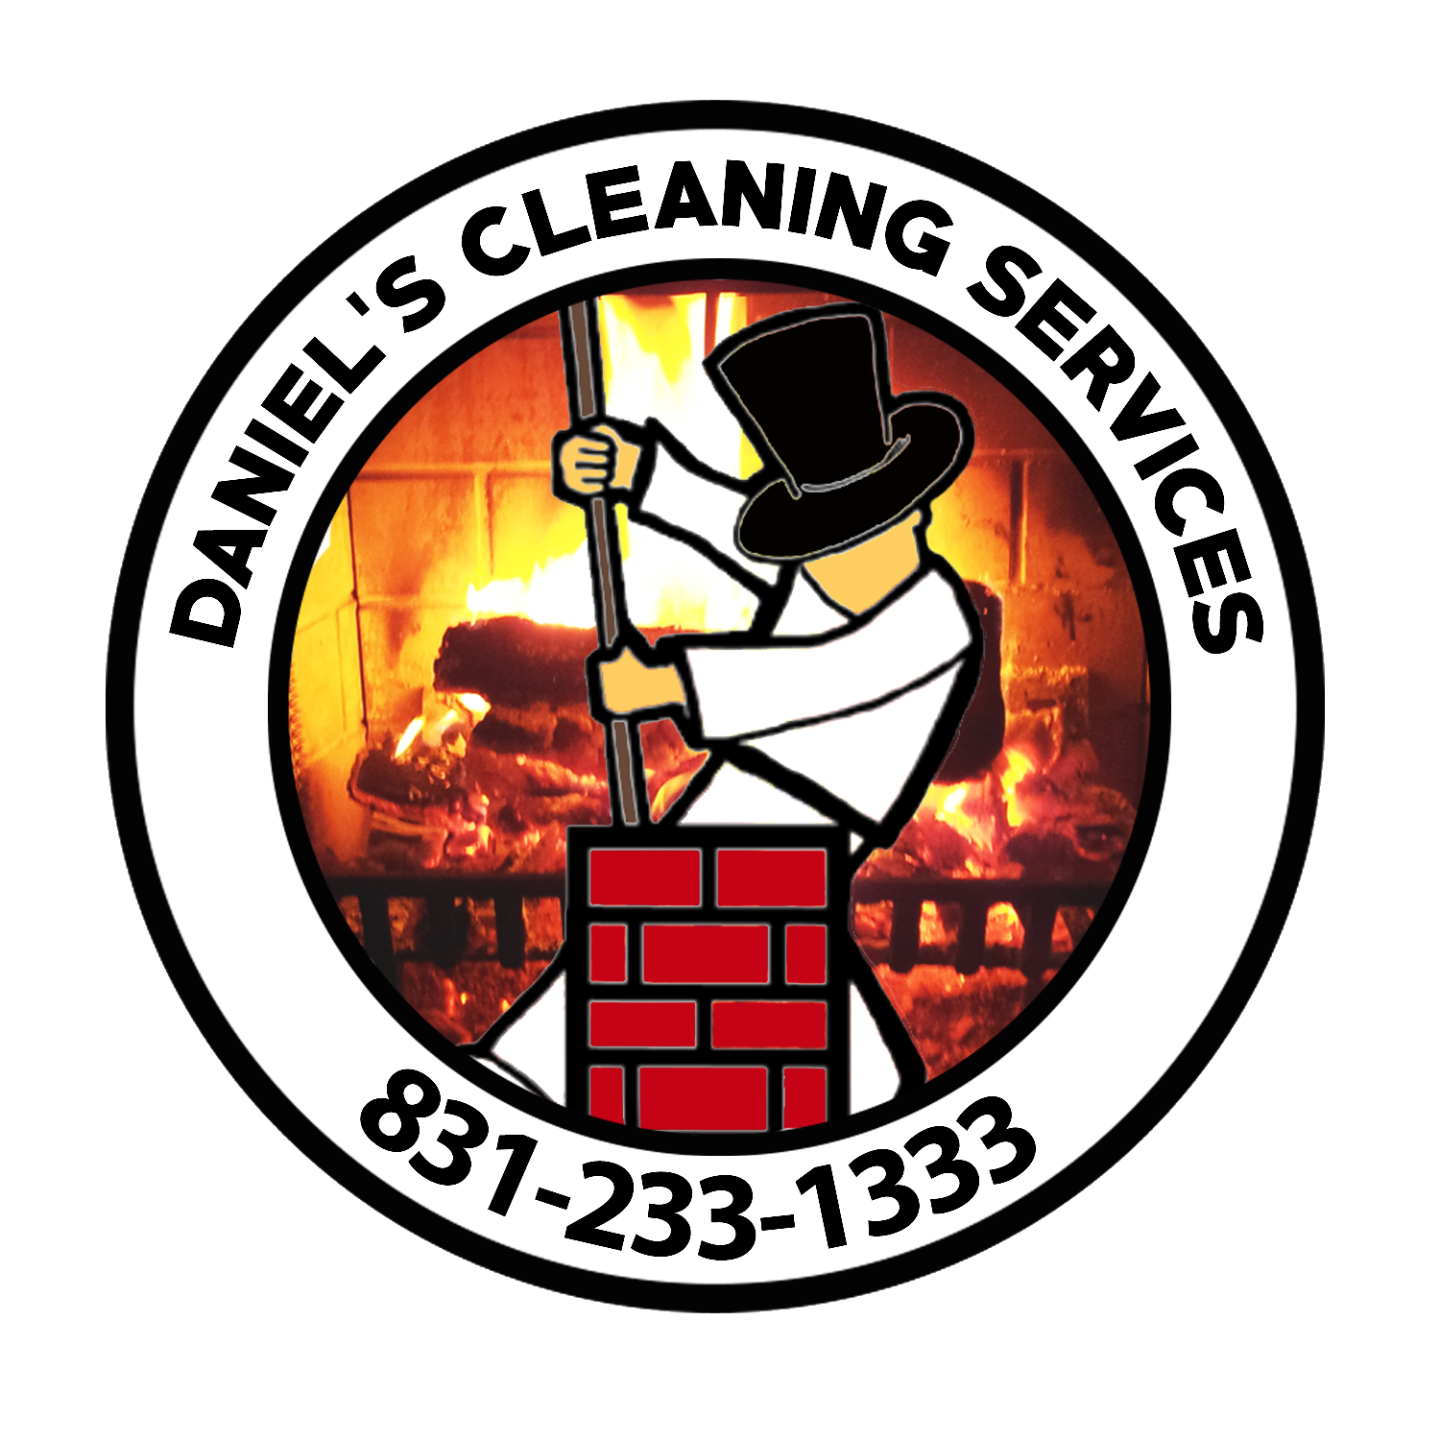 Daniels Cleaning Services logo